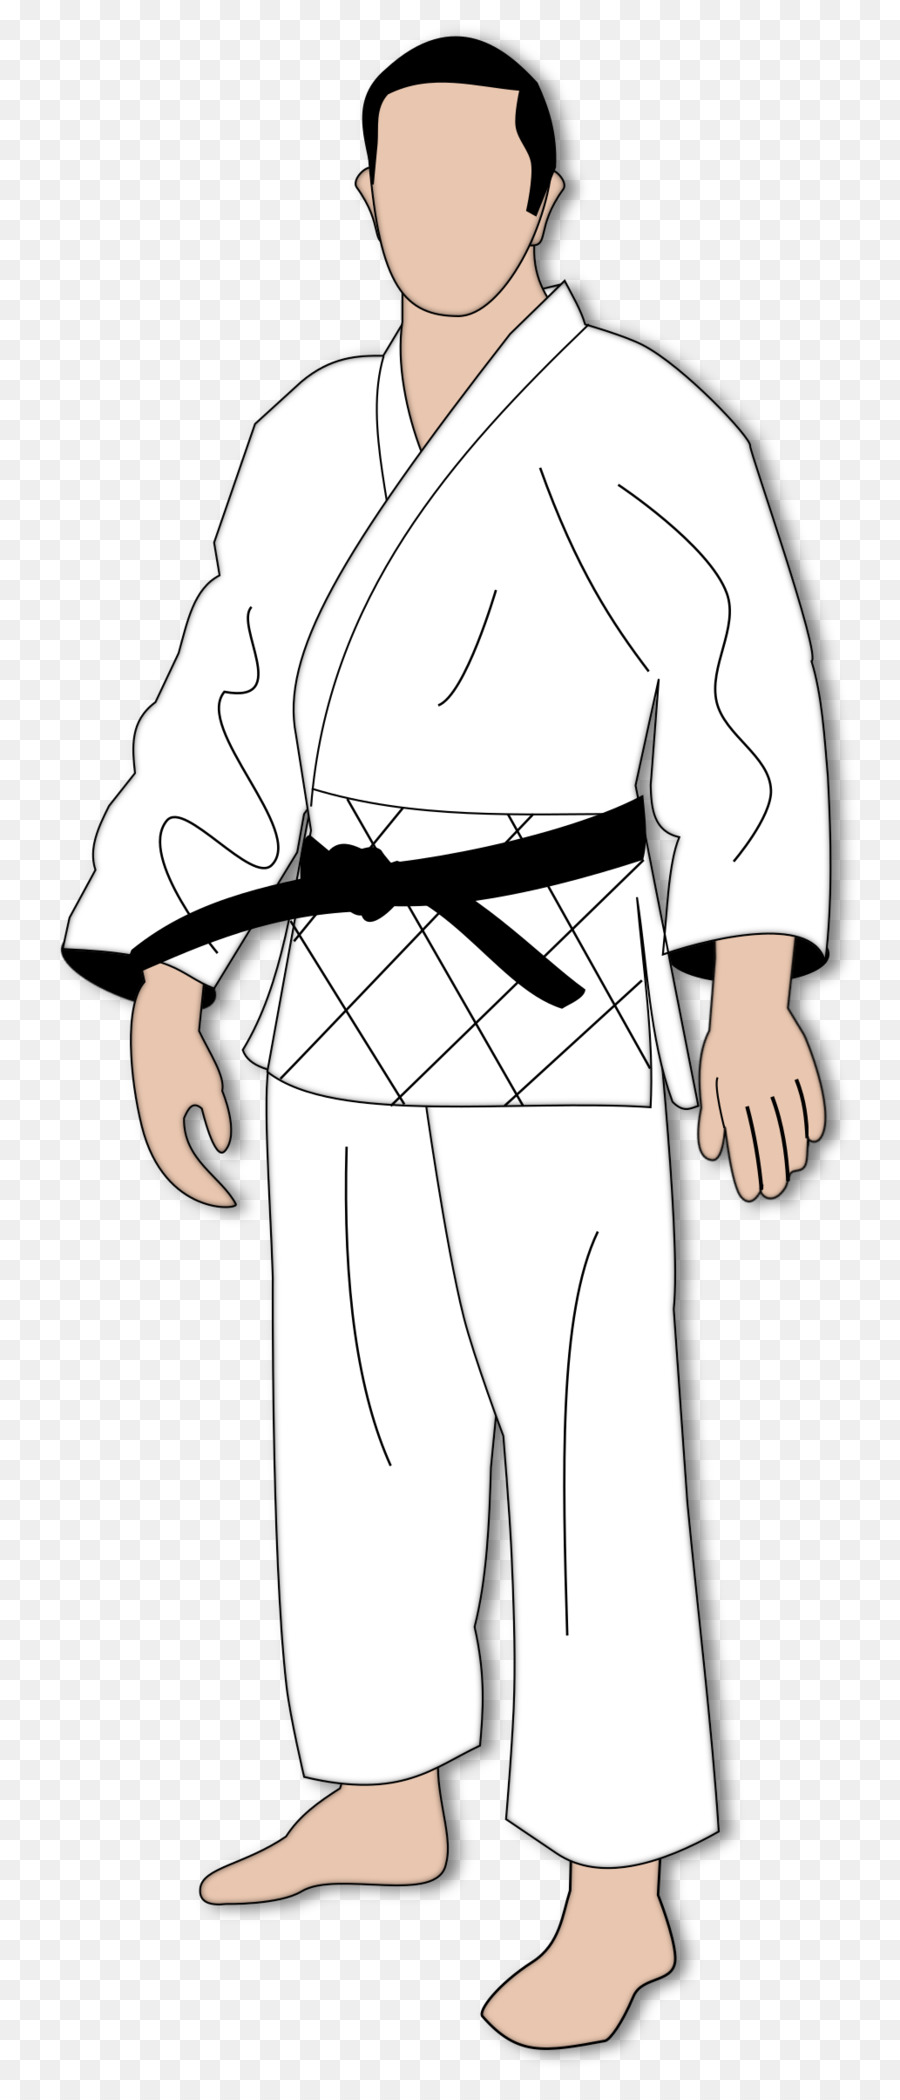 Karate gi clipart black and white download Person Cartoon clipart - Clothing, White, Man, transparent ... black and white download